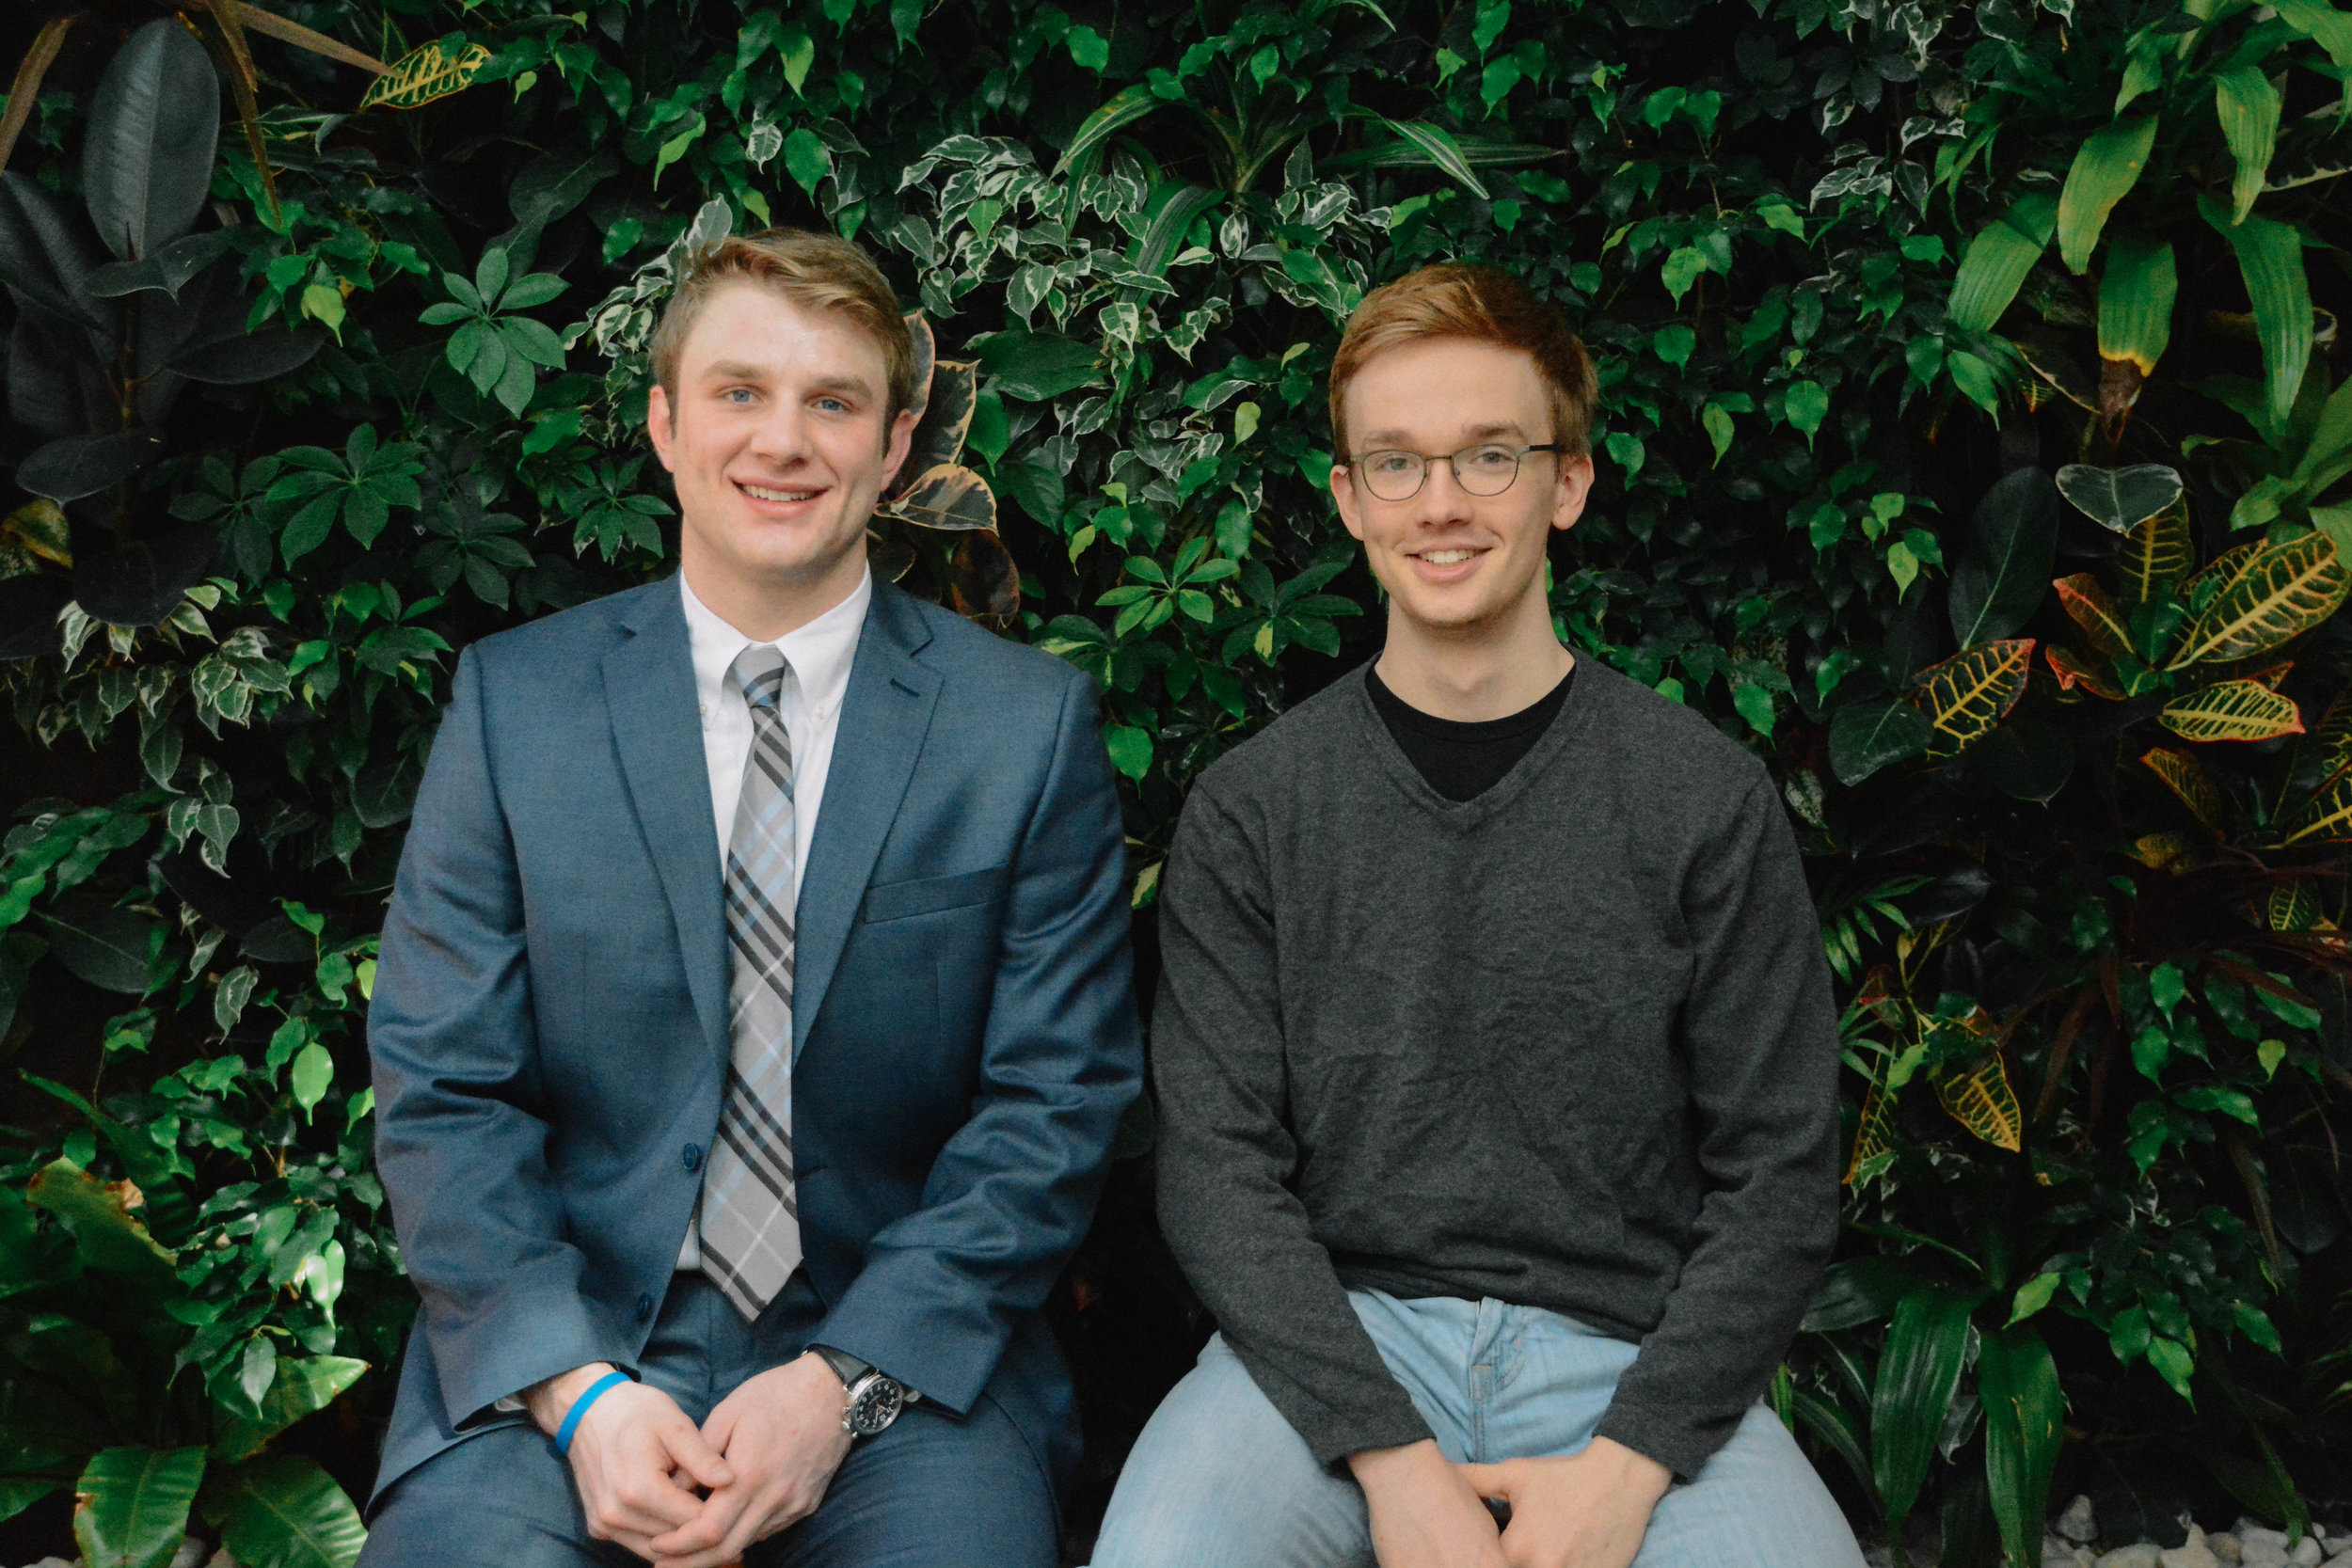 Michigan Aquaponics - An organization using aquaponics to promote and educate individuals about sustainable food production.RILEY MAHER, DYLAN PLUMMER